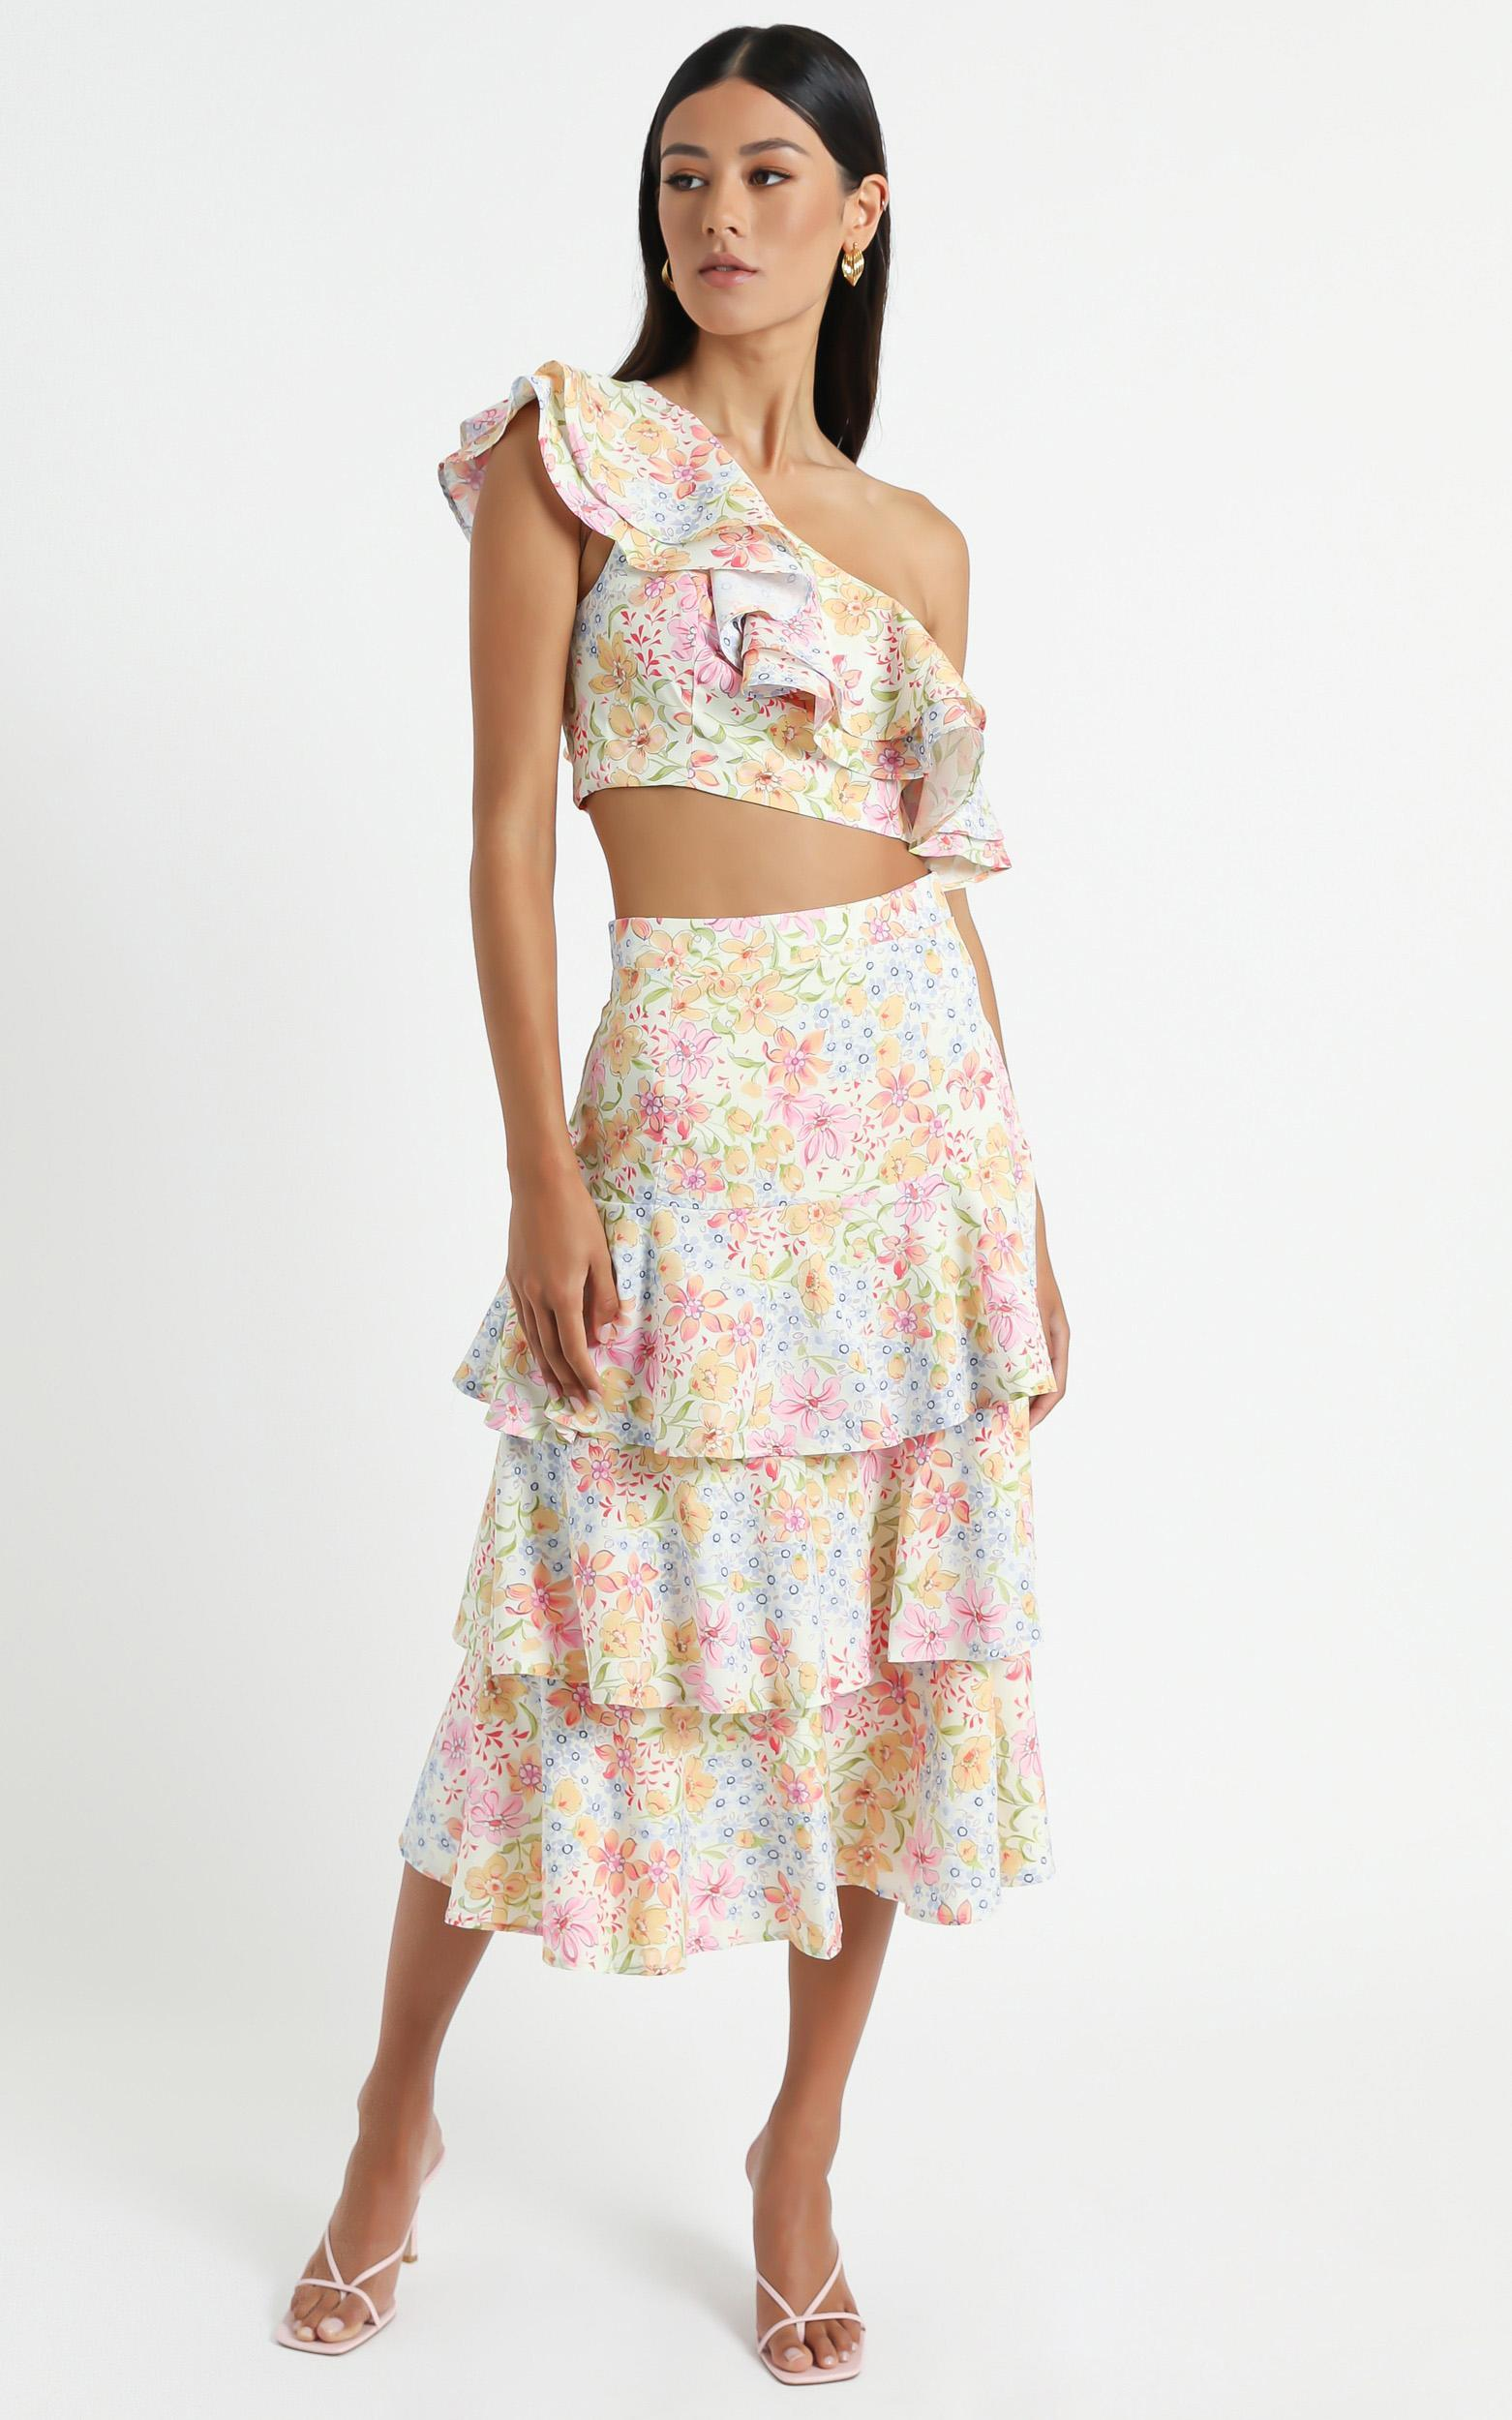 Provence Skirt in Multi Floral - 6 (XS), Multi, hi-res image number null